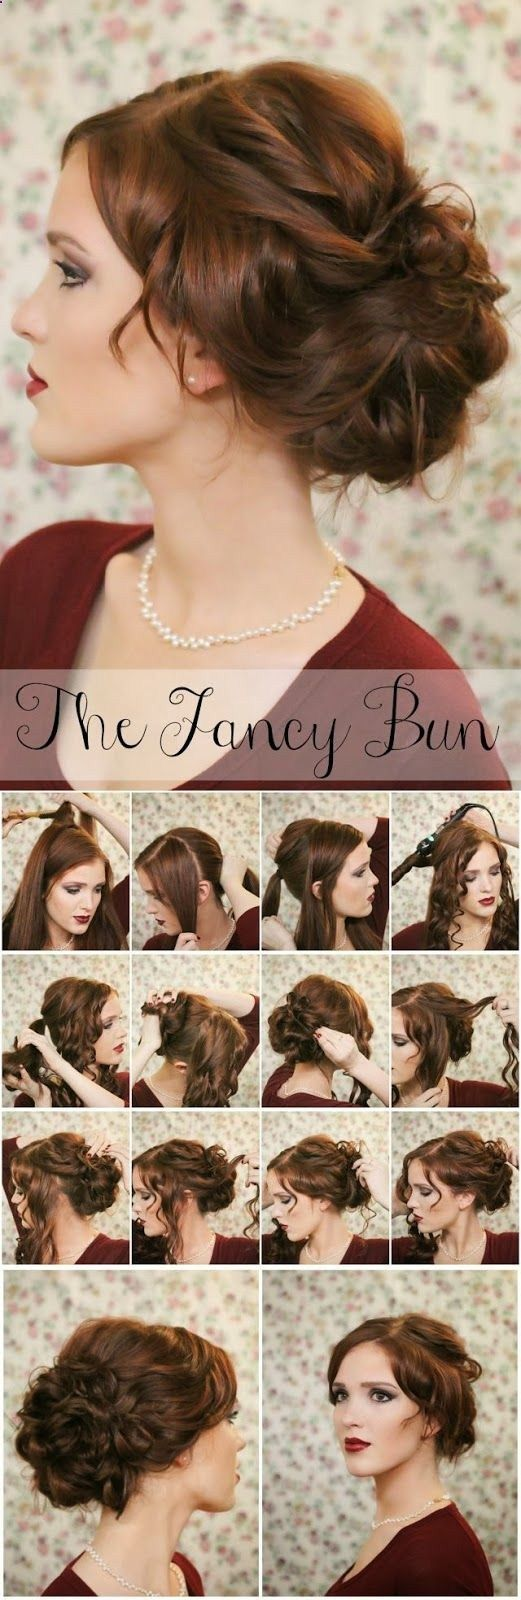 Skip the hairdressers and take charge of your look with this easy tutorial for a fancy bun wedding hairstyle! Even you can rock a DIY'd updo!